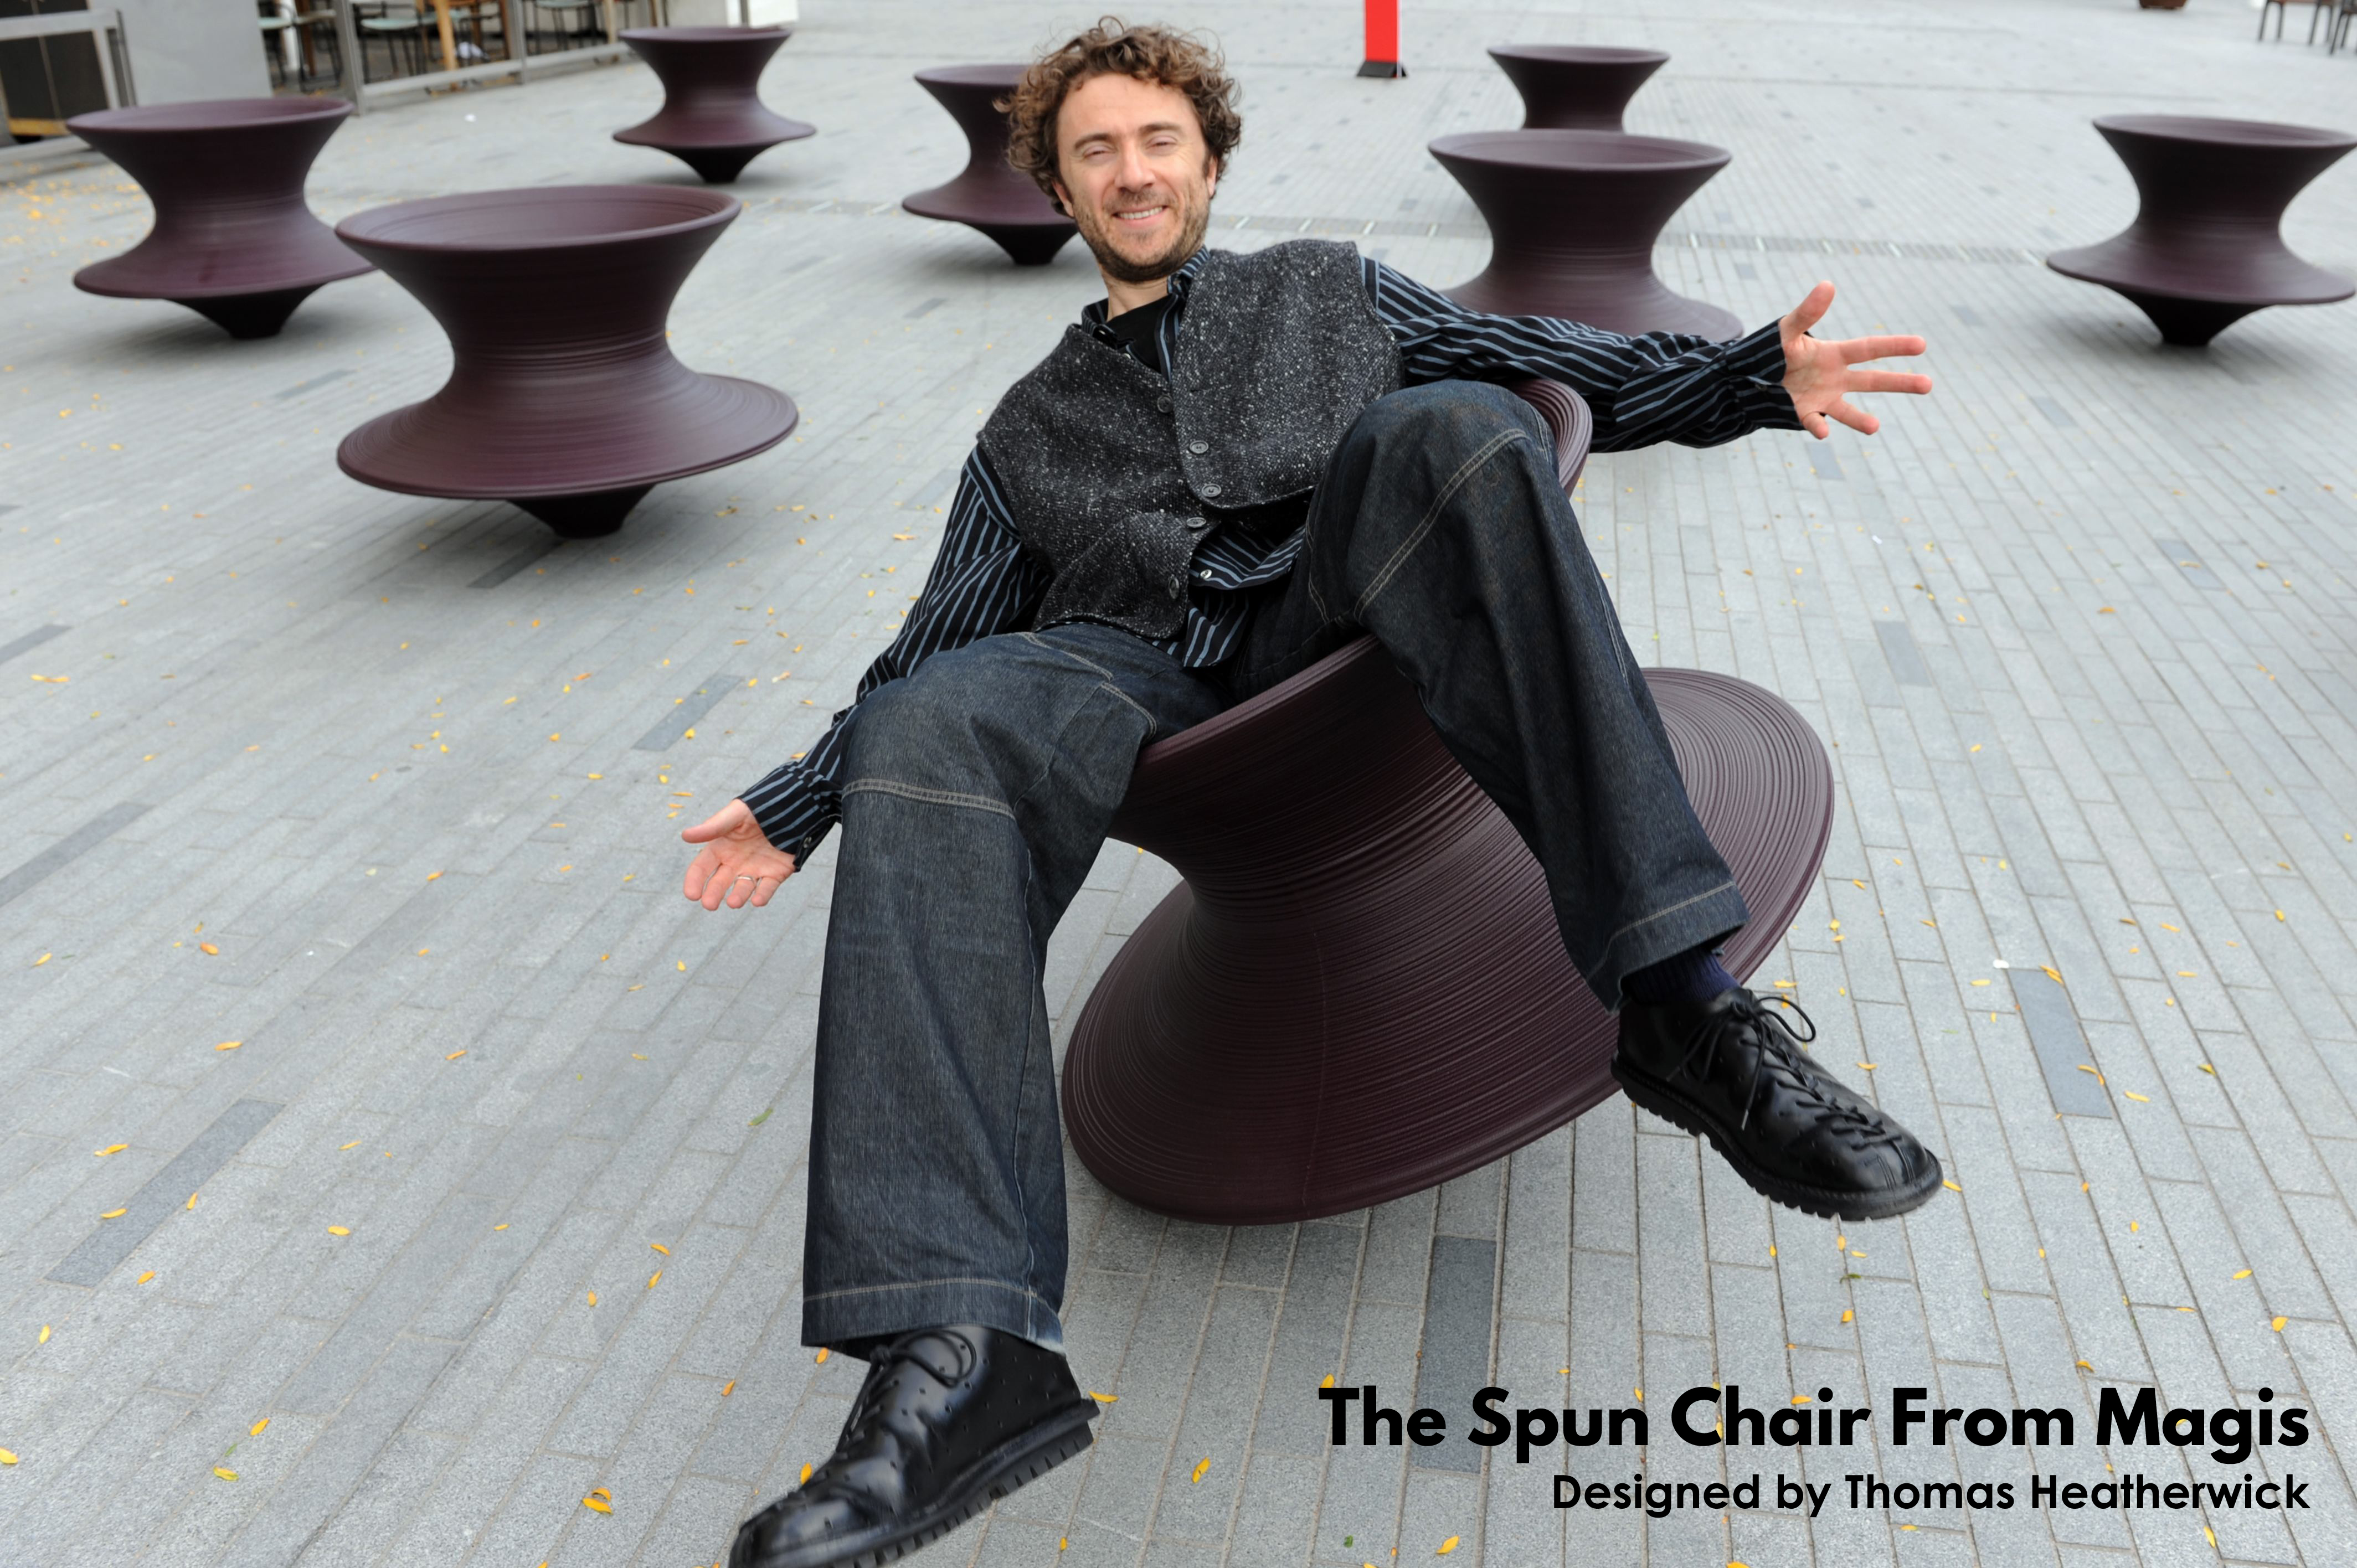 10560589 in addition Bjork Collection as well Hollywood Regency Rev ed additionally Design House Stockholm Store At Selfridges London likewise Bathroom For Elderly. on spin chairs